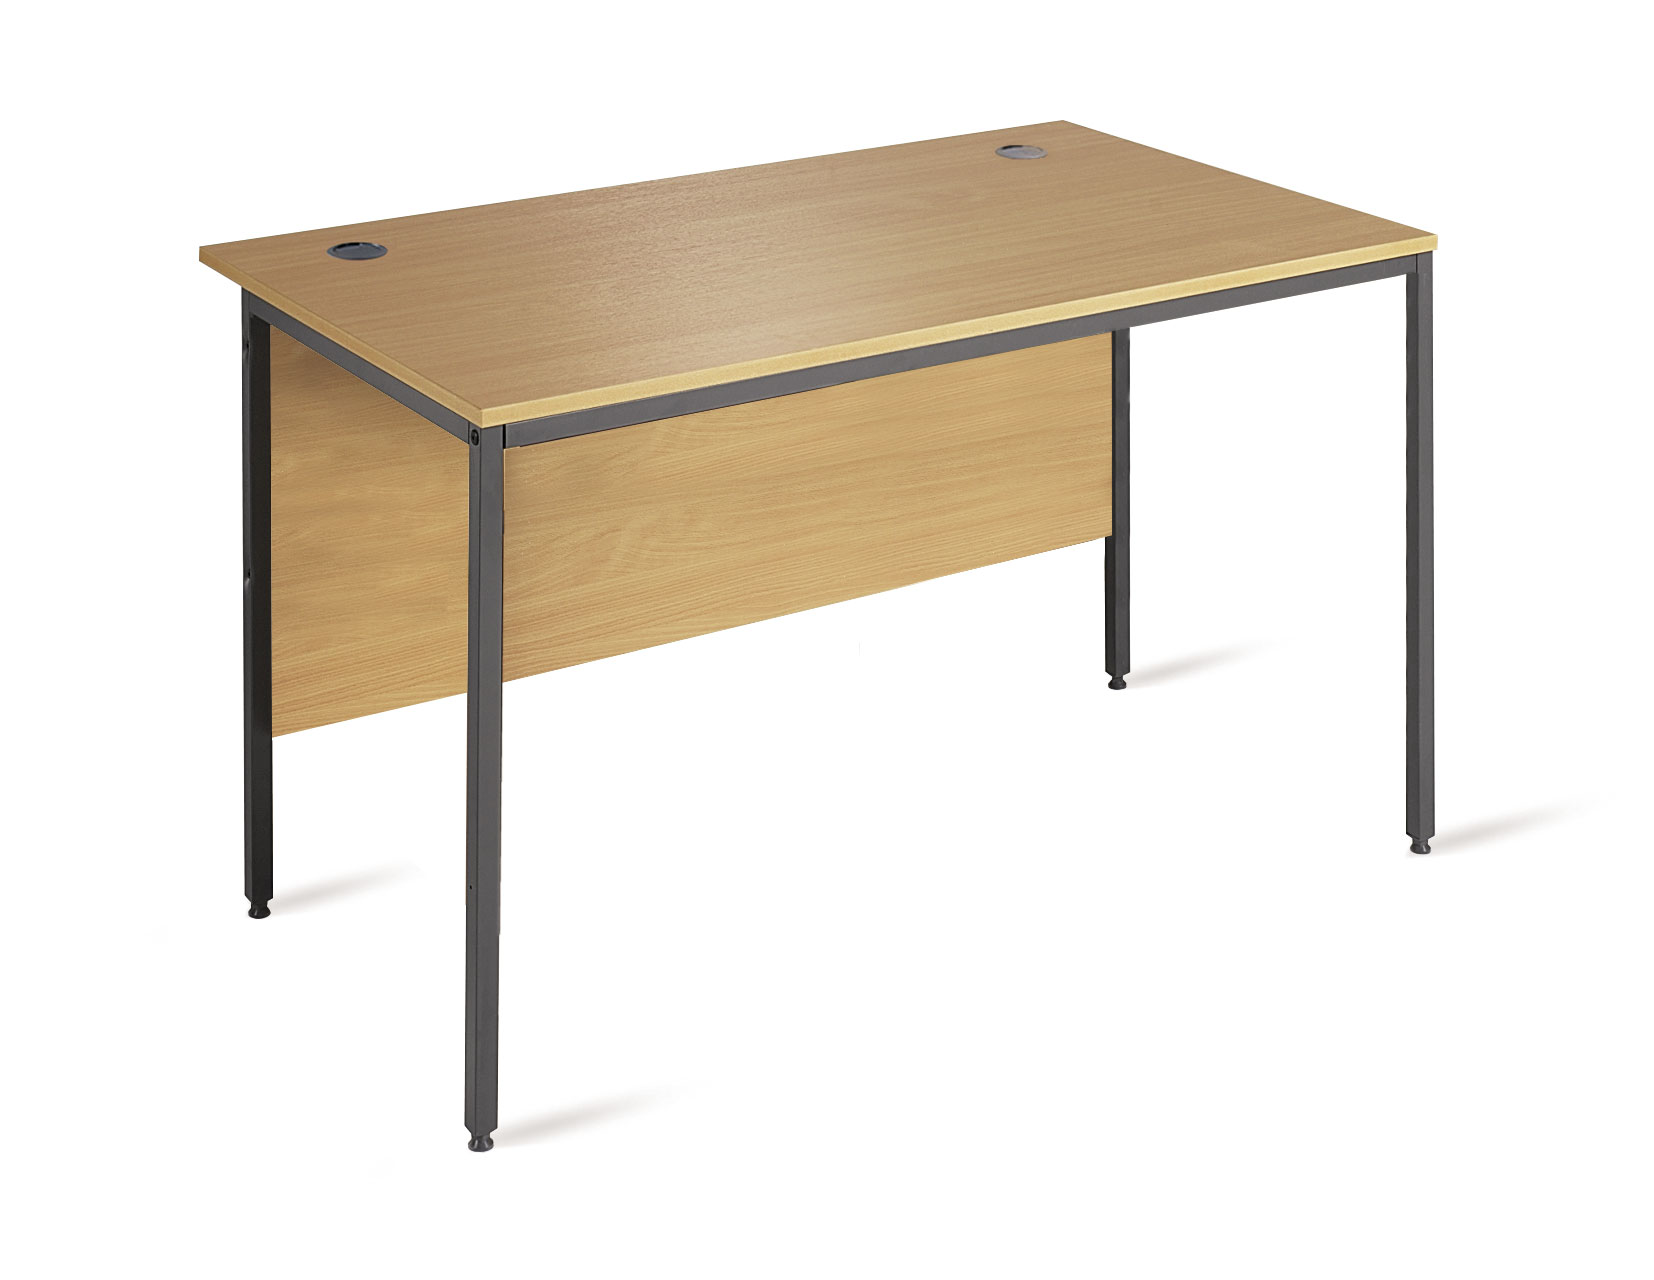 Entry level H frame rectangular straight desk with modesty panel